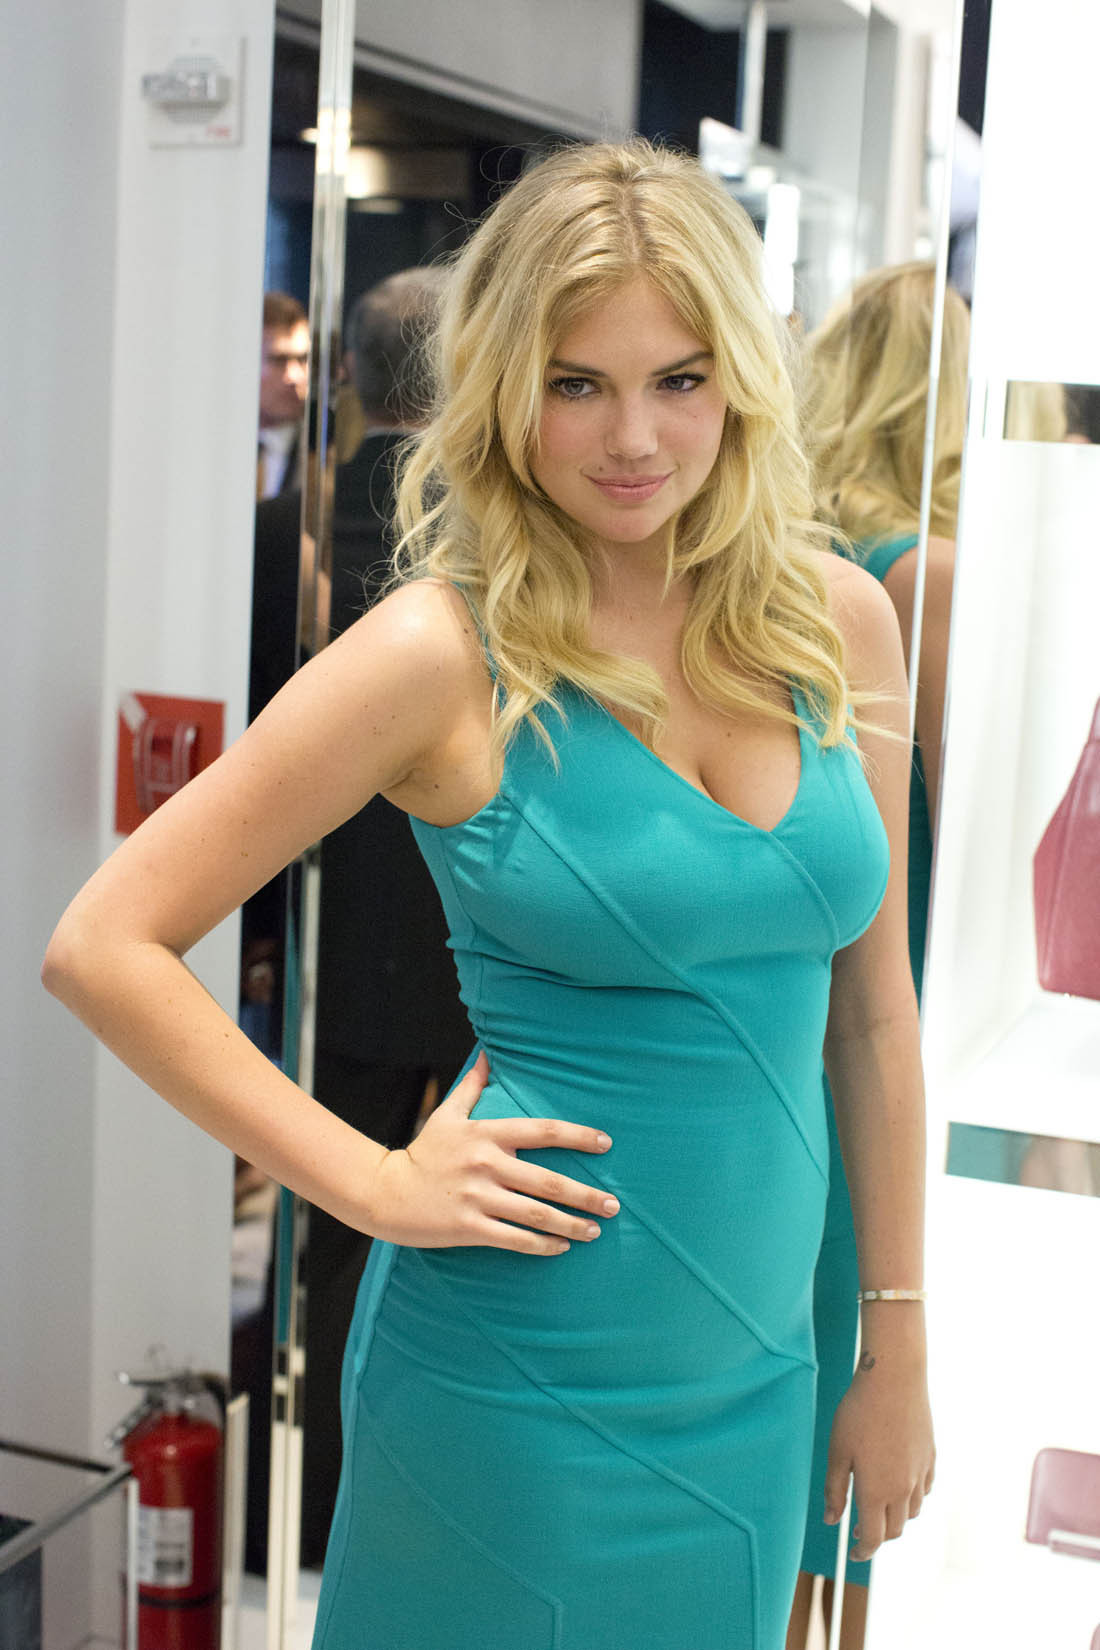 Kate Upton is delightful